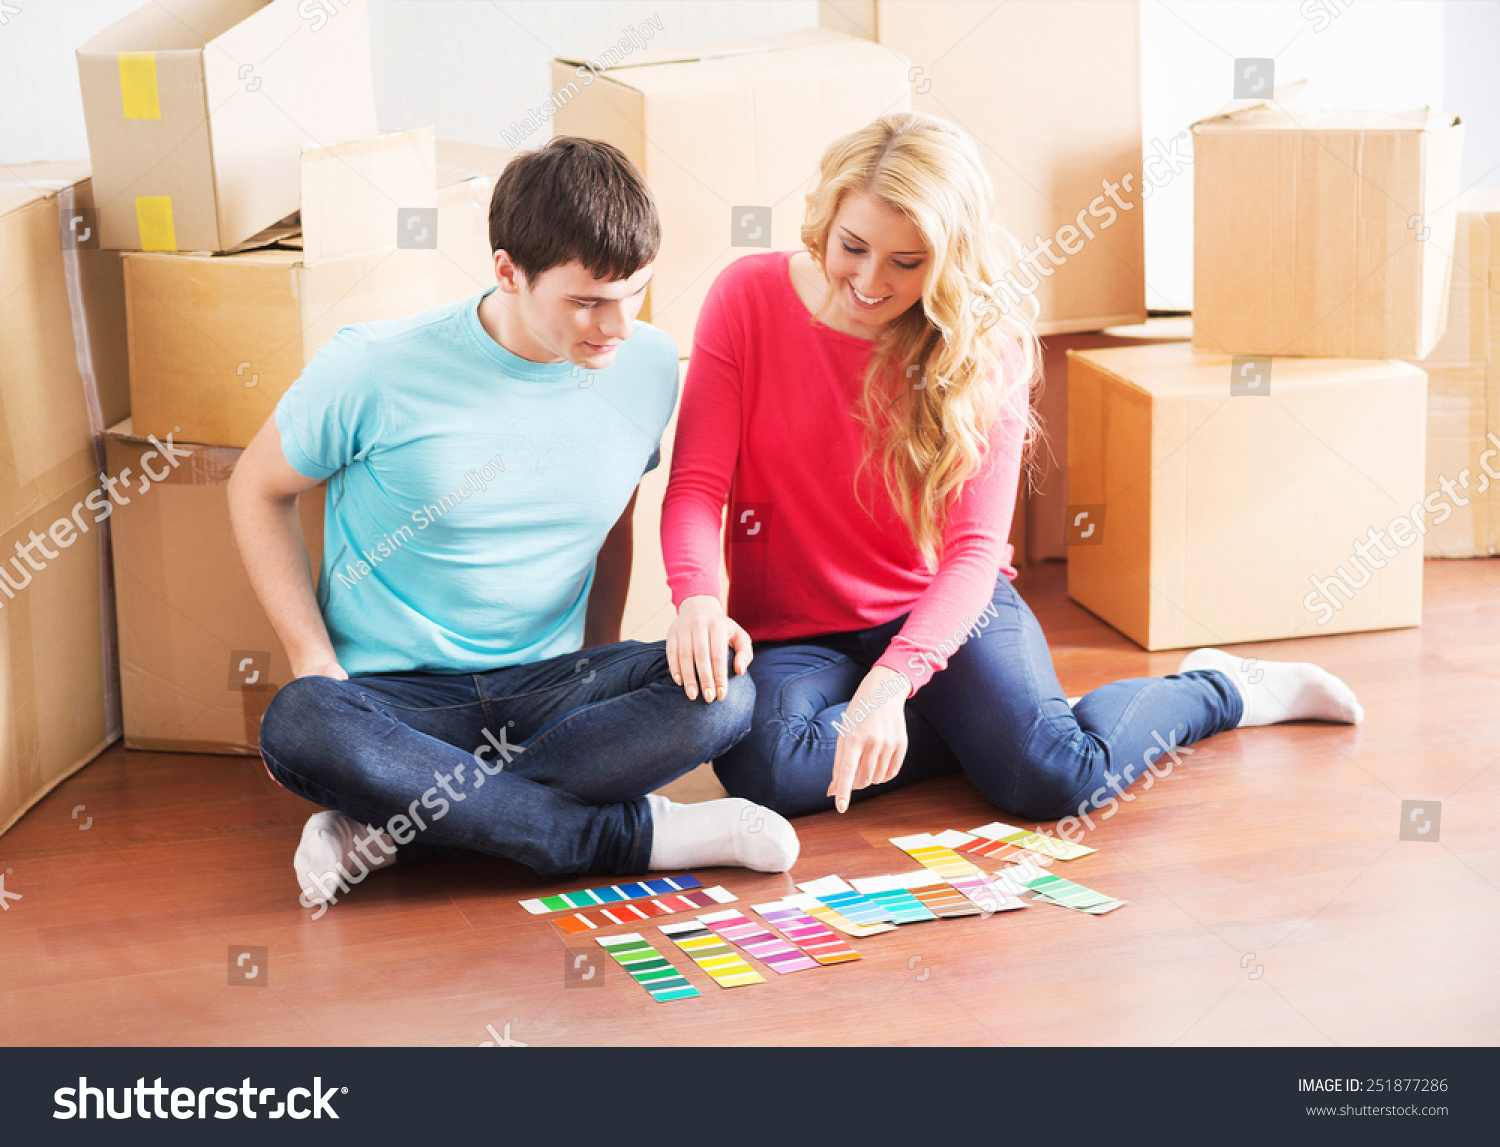 Young couple moving new home wife stock photo 251877286 shutterstock - Young couple modern homes ...